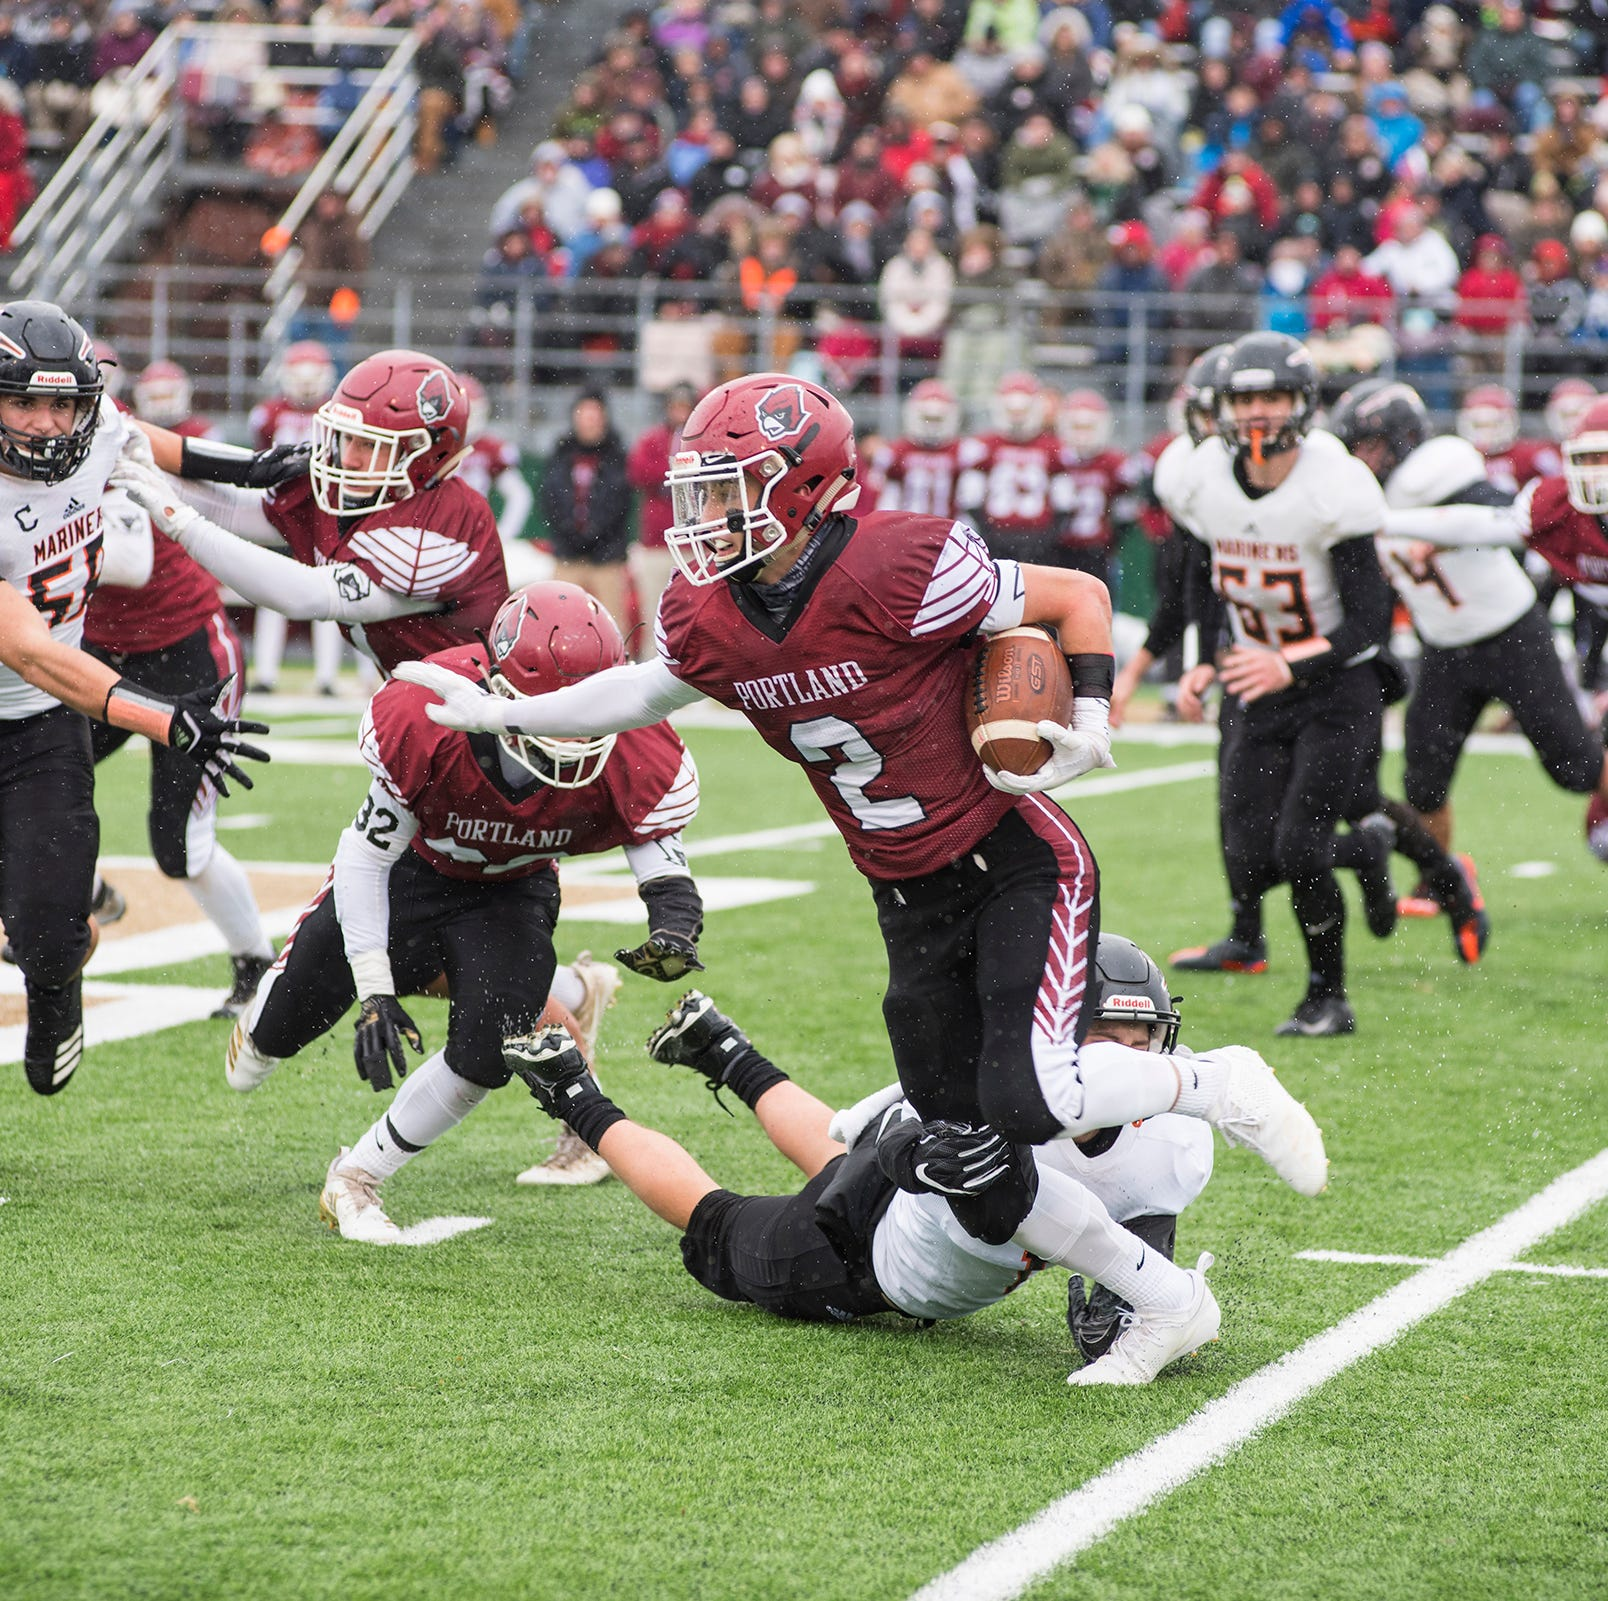 Lansing area high school football scores for state semifinals